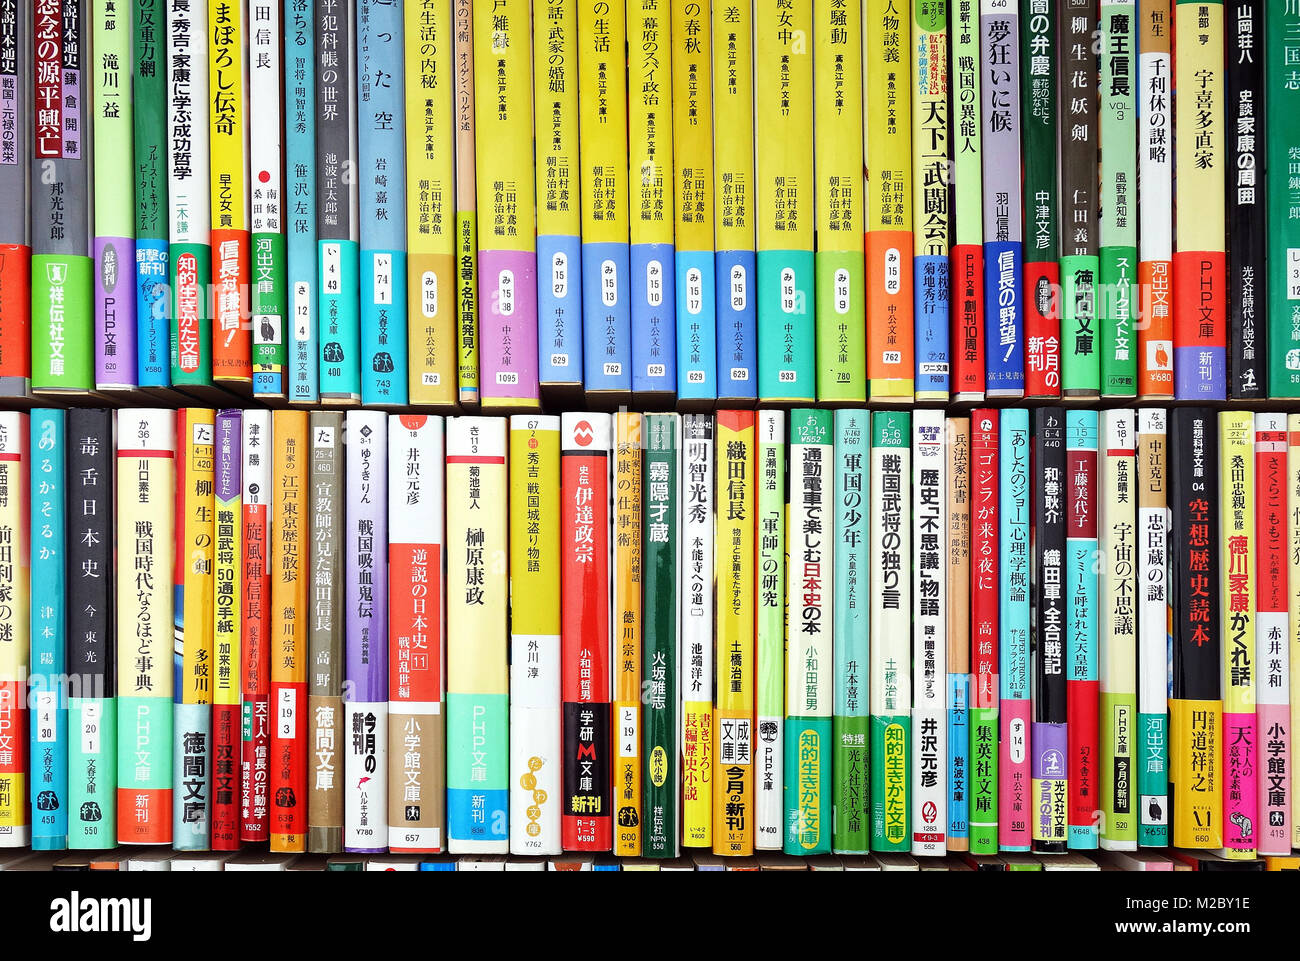 japanese books in a library - Stock Image